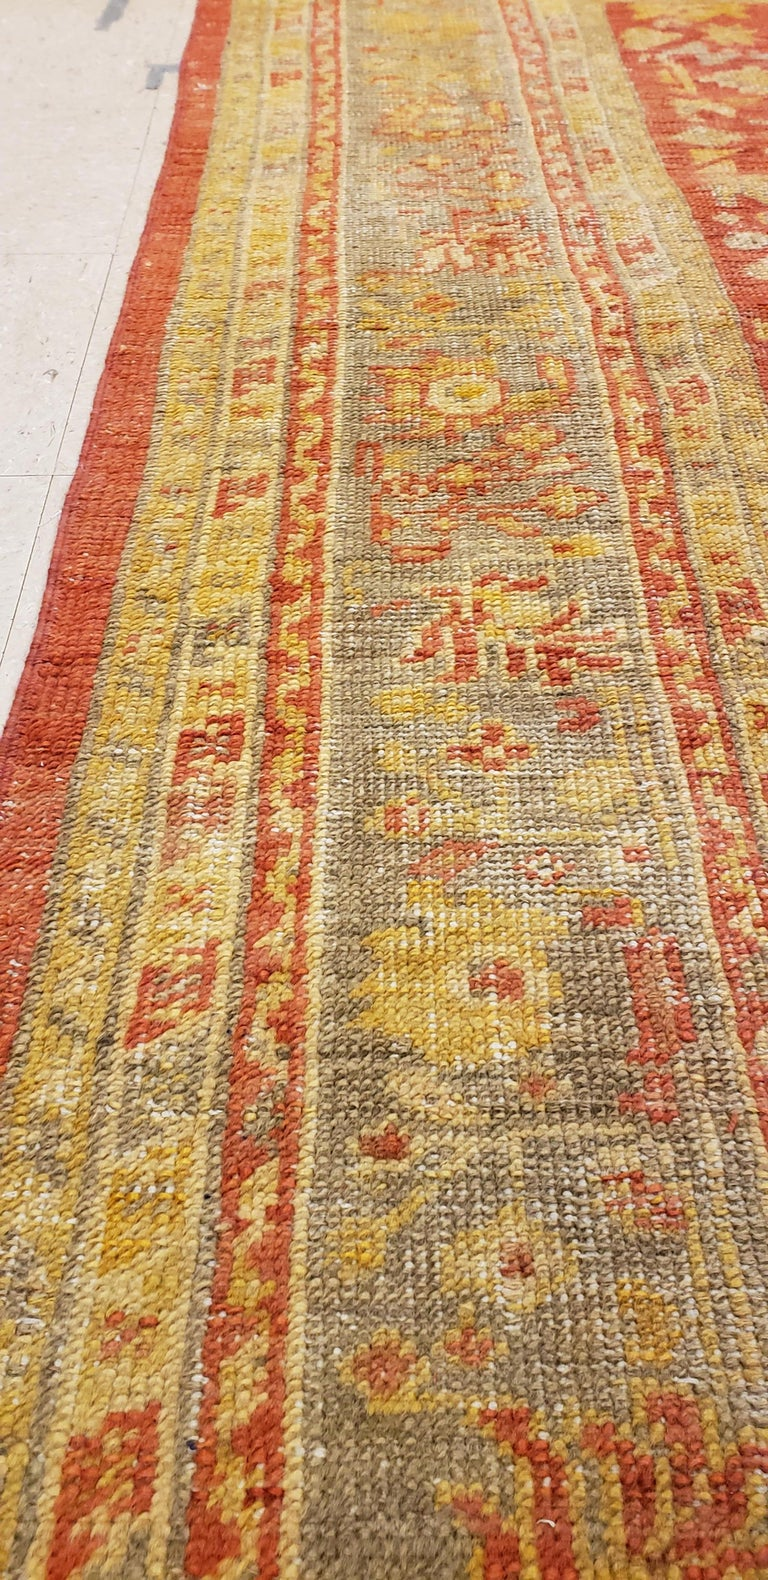 Oushak Carpet, Oriental Rug, Handmade Rug Saffron, Ivory, Light Blue and Coral In Good Condition For Sale In New York, NY